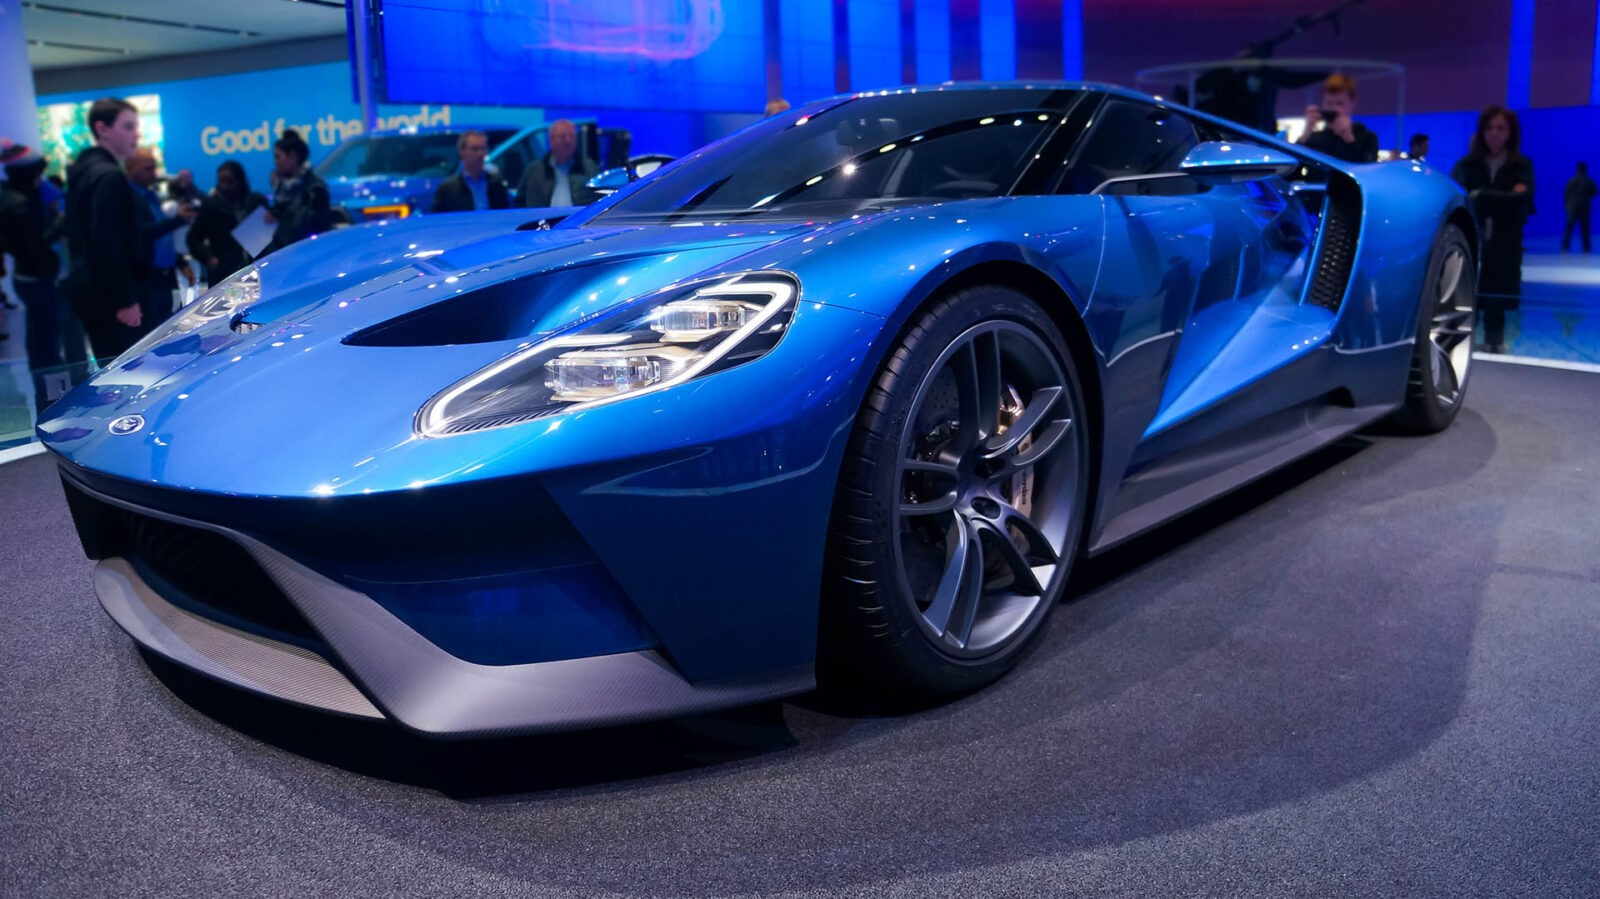 30 Ford Gt 2016 Wallpapers Hd Free Download